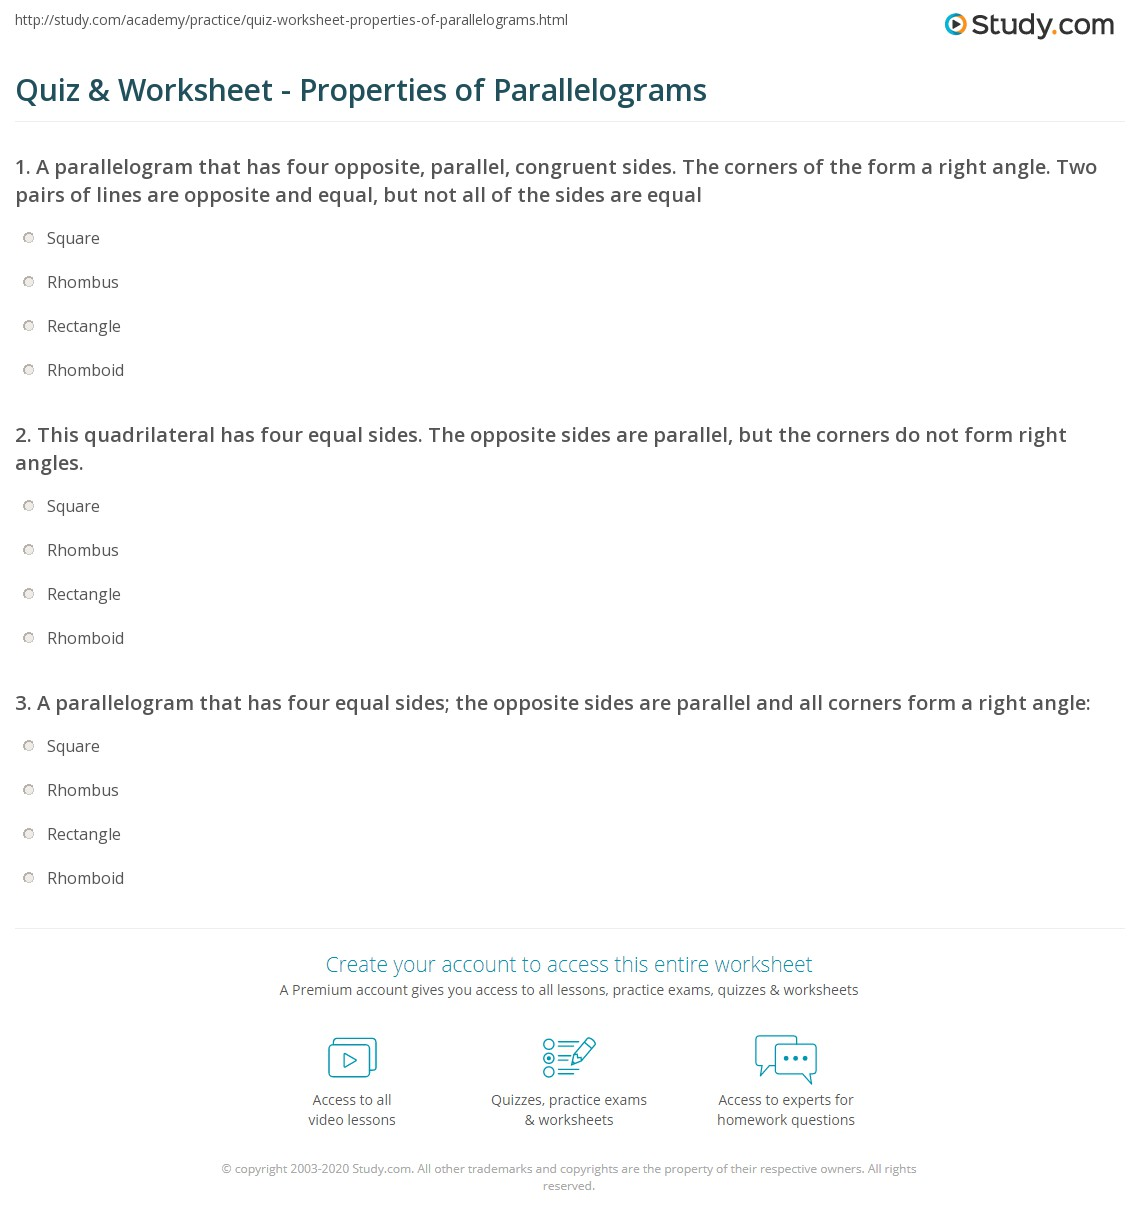 worksheet Properties Of Parallelograms Worksheet Answers quiz worksheet properties of parallelograms study com print parallelogram in geometry definition shapes worksheet